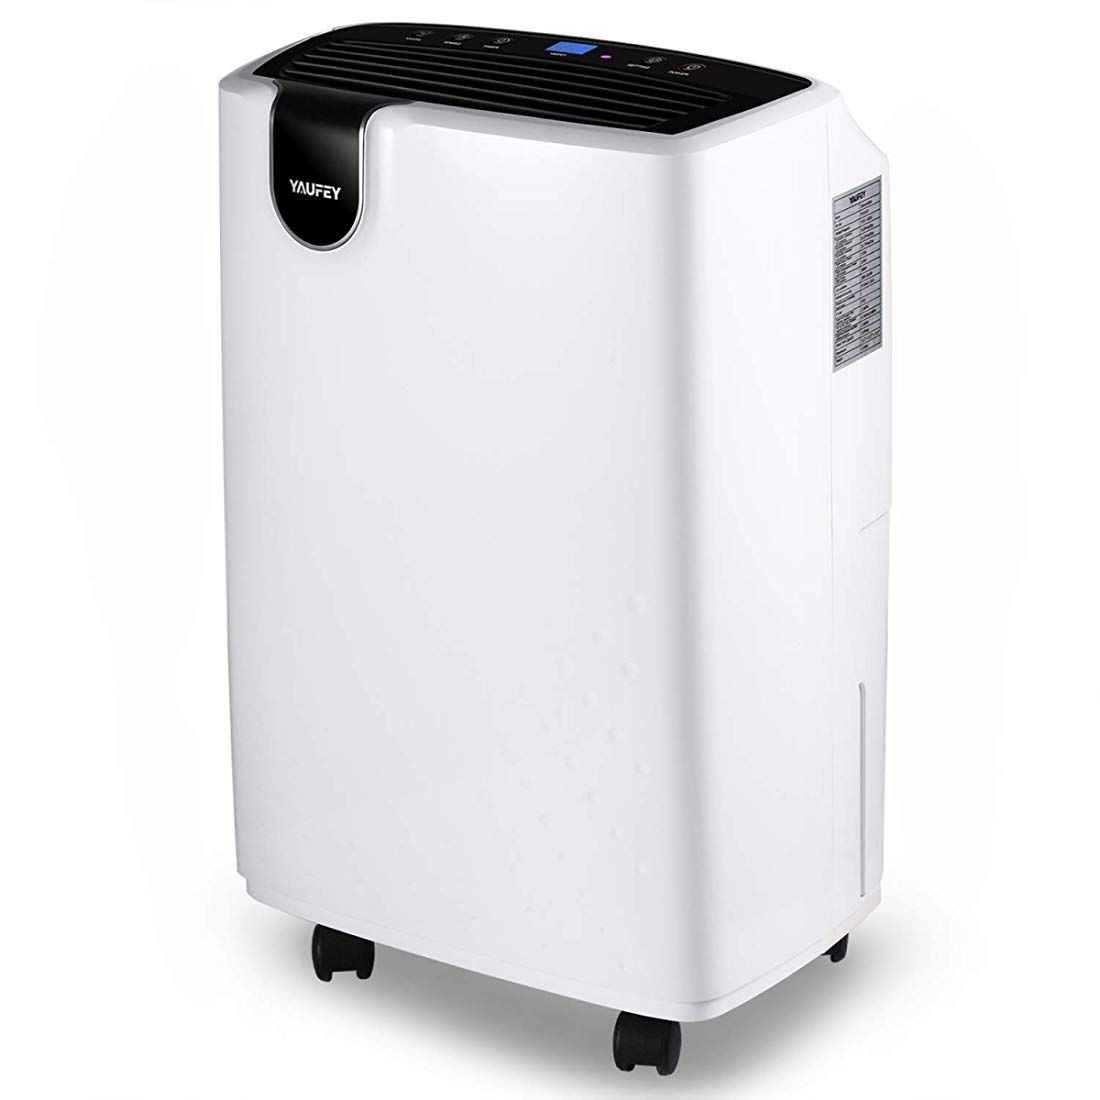 Yaufey 30 Pint Dehumidifier For Home Basements Bedroom Garage 4 Gallons Day Working Capacity With 0 47 Dehumidifier Basement Dehumidifiers Basement Bedrooms